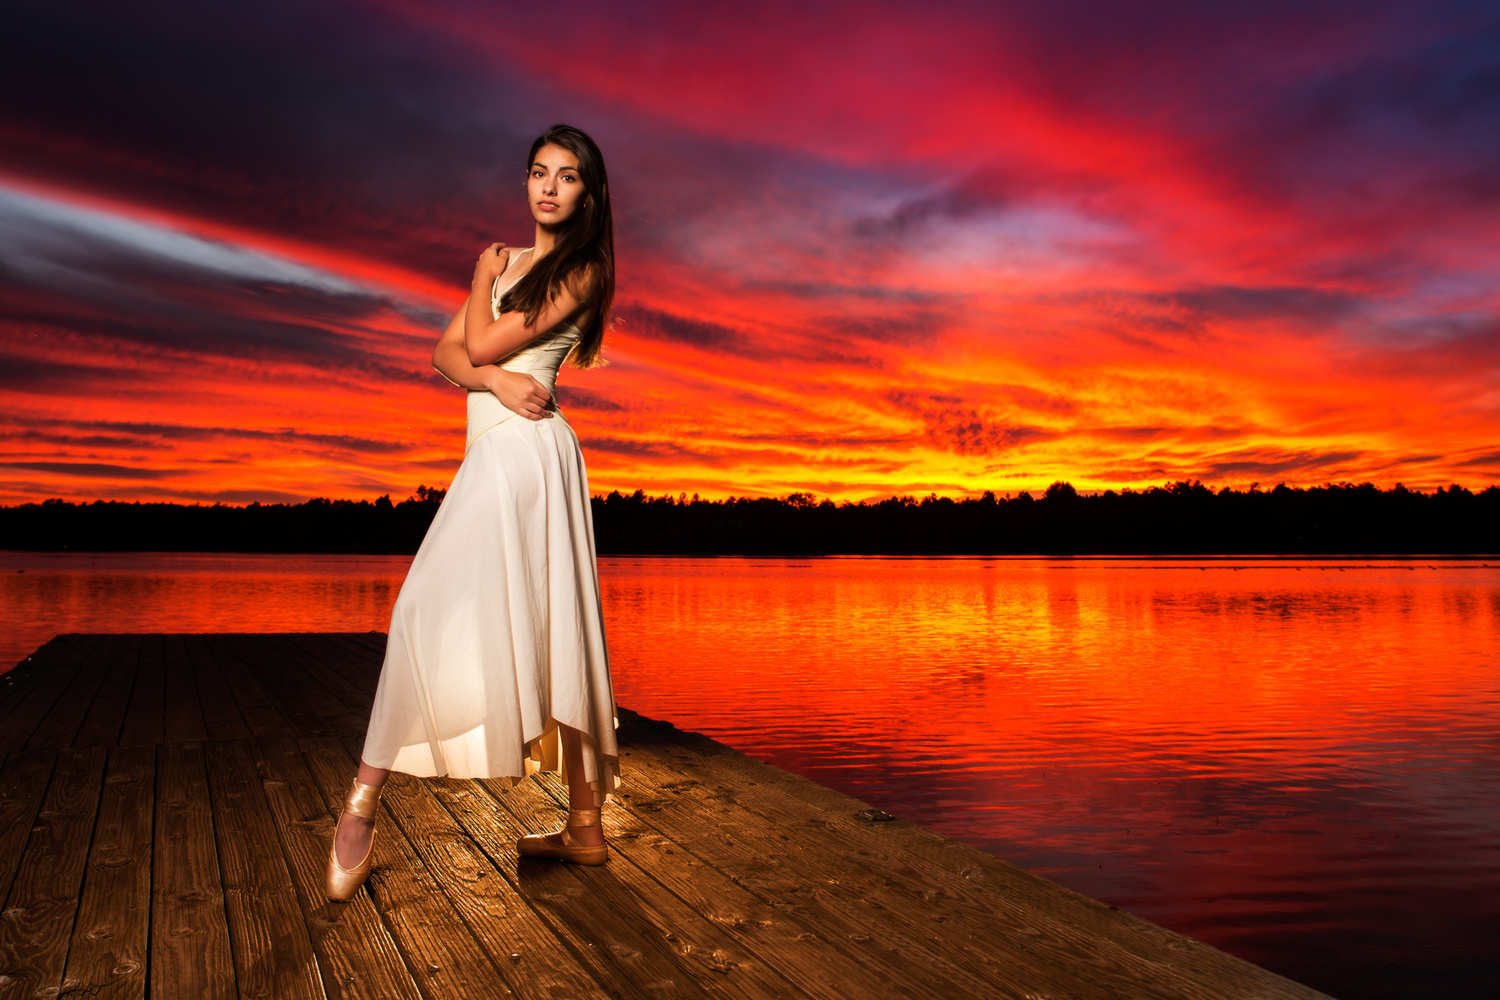 Ballet at Sunset 2 by Mike Mahoney